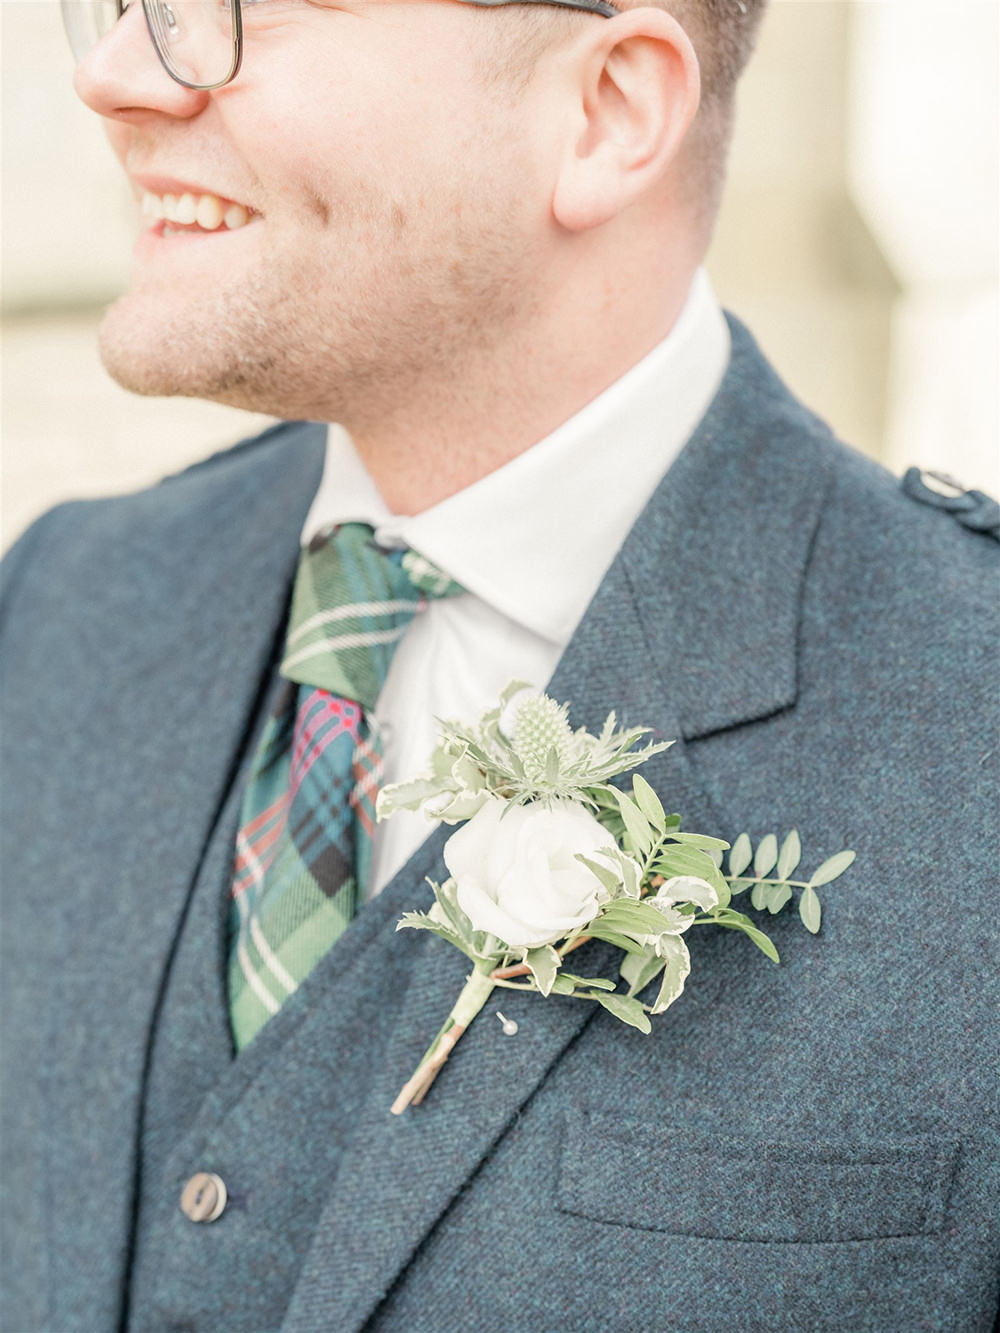 Groom Kilt Suit Tartan Tie Buttonhole Flowers Lockdown Wedding Carn Patrick Photography